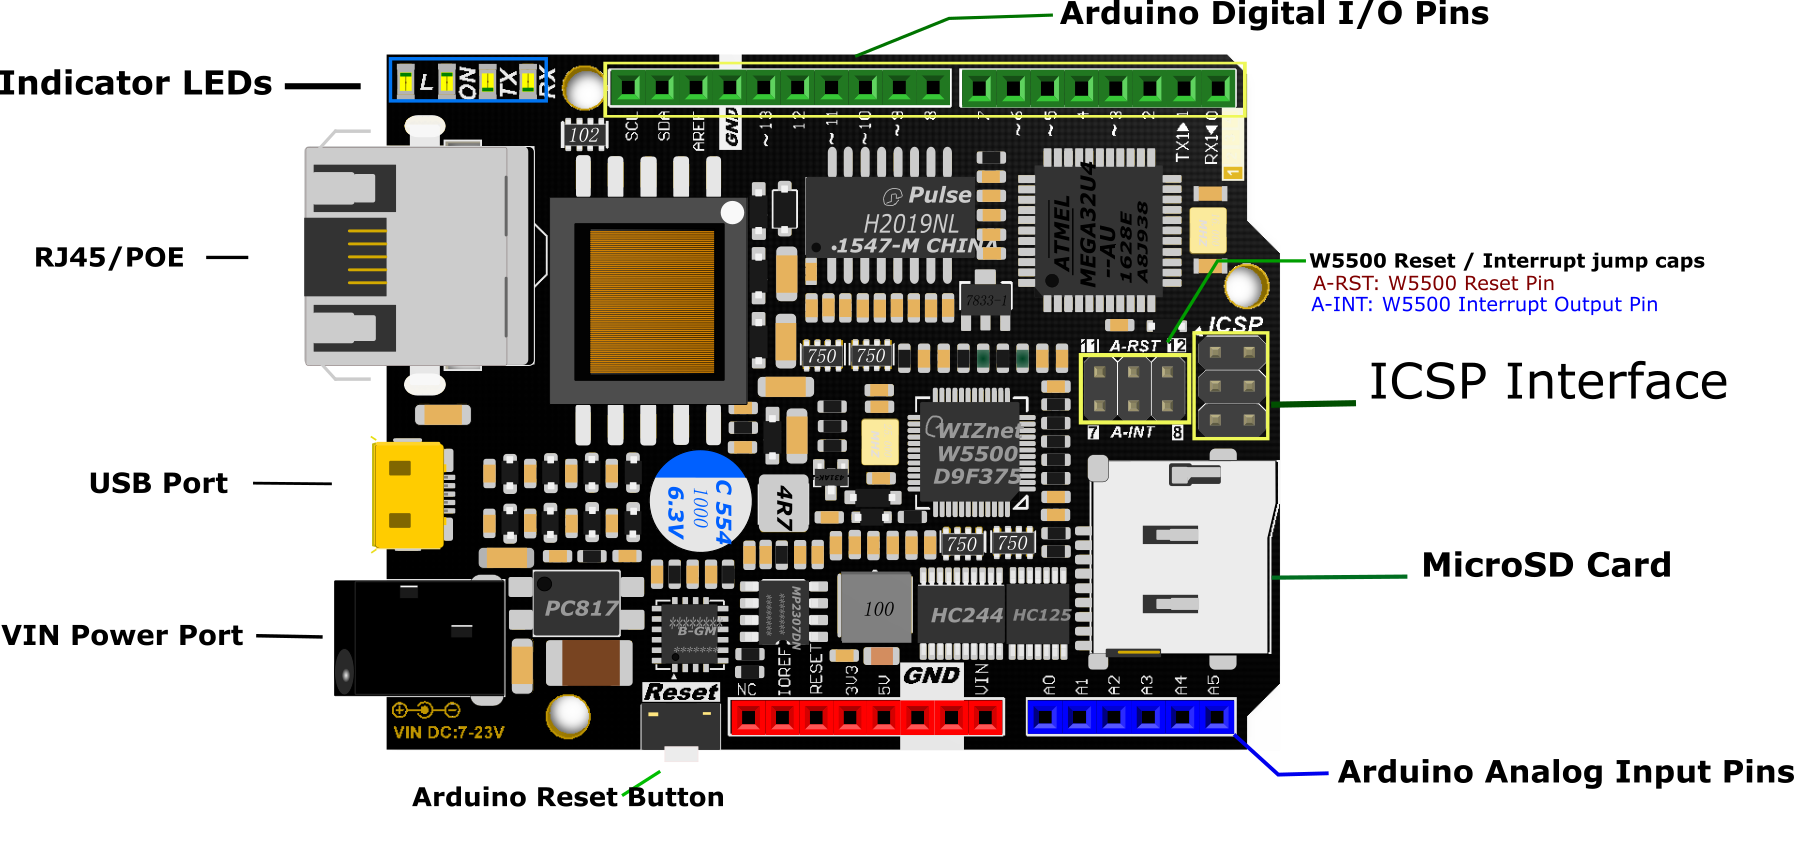 W5500_Ethernet_with_POE_Mainboard_SKU__DFR0342-DFRobot